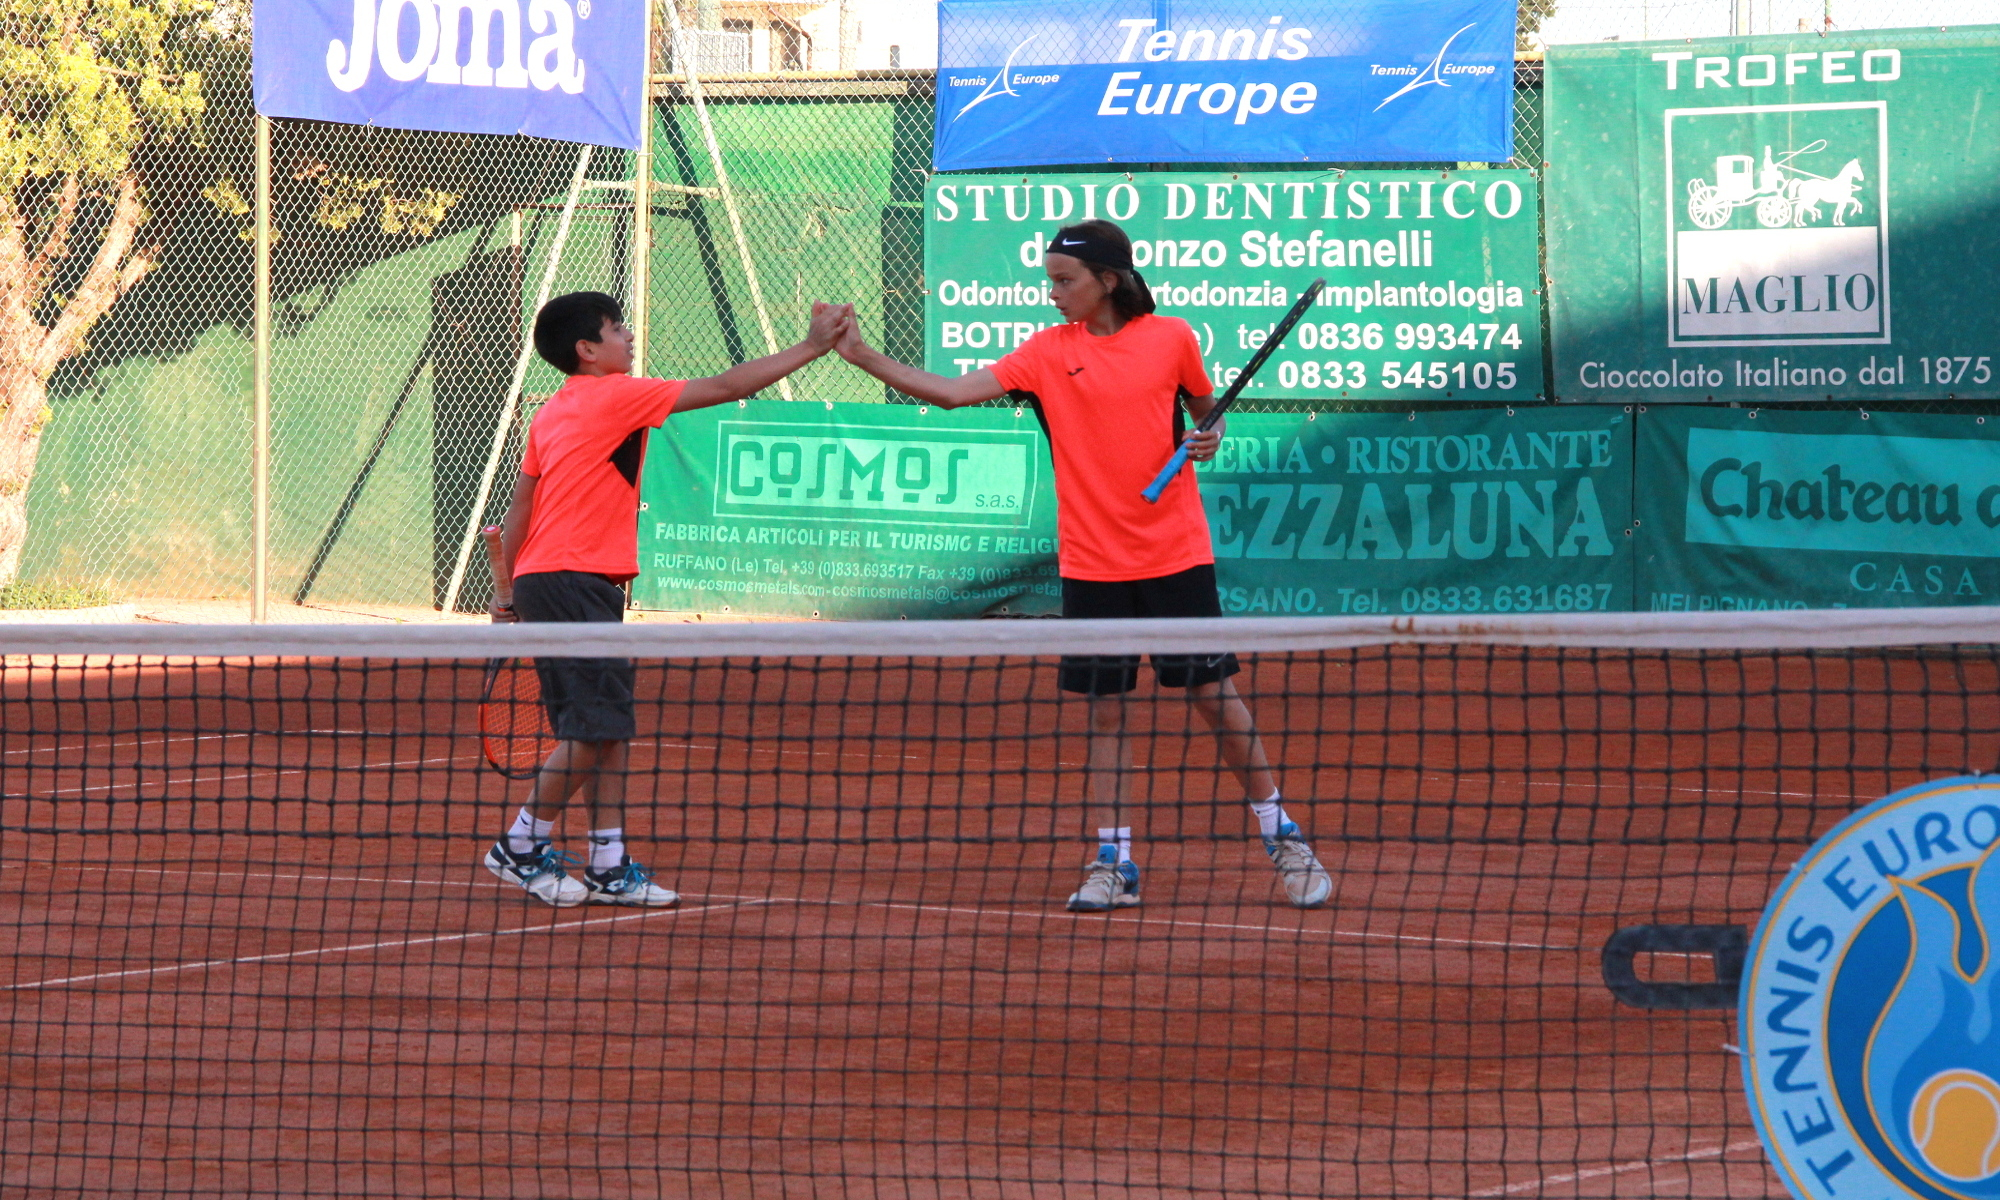 Trofeo Maglio - Torneo Internazionale Tennis - International Tennis Tournament Under 12 (网球国际赛12岁以下) - Circolo Tennis Maglie (Italy)